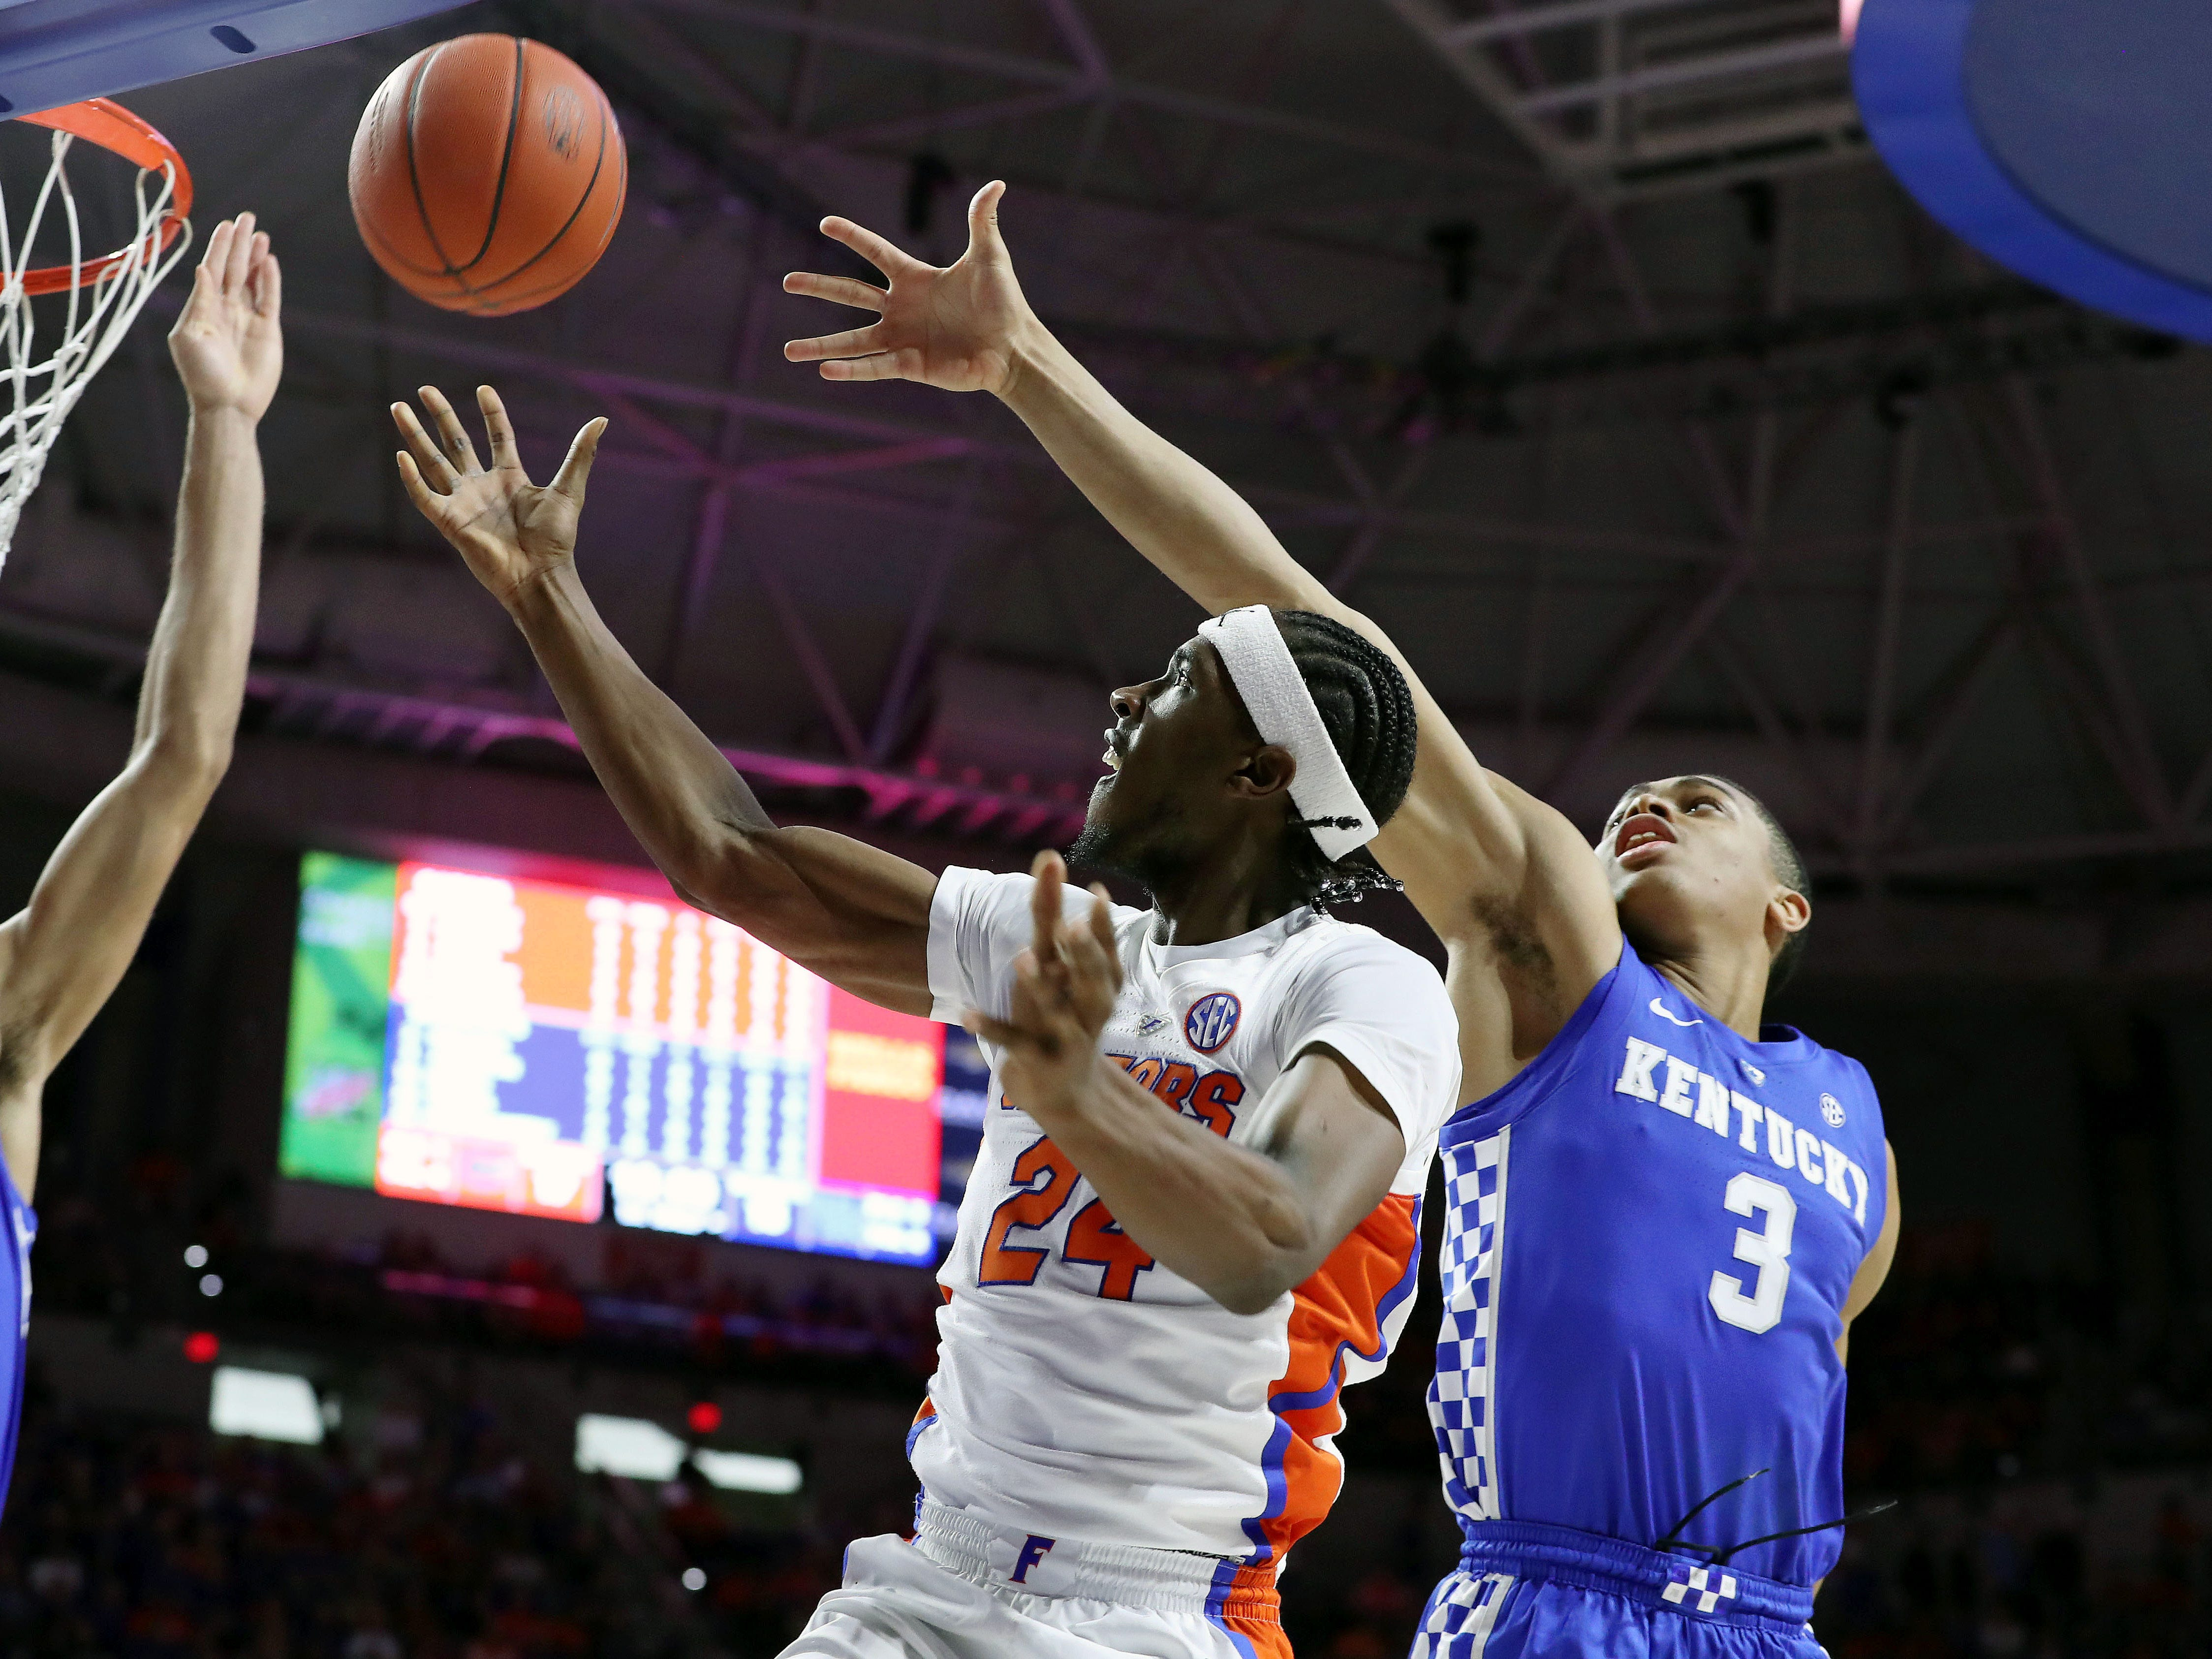 Kentucky Wildcats forward EJ Montgomery (23) blocks Florida Gators guard Deaundrae Ballard (24) shot during the first half at Exactech Arena in Gainesville, Florida, on Saturday, Feb. 2, 2019.